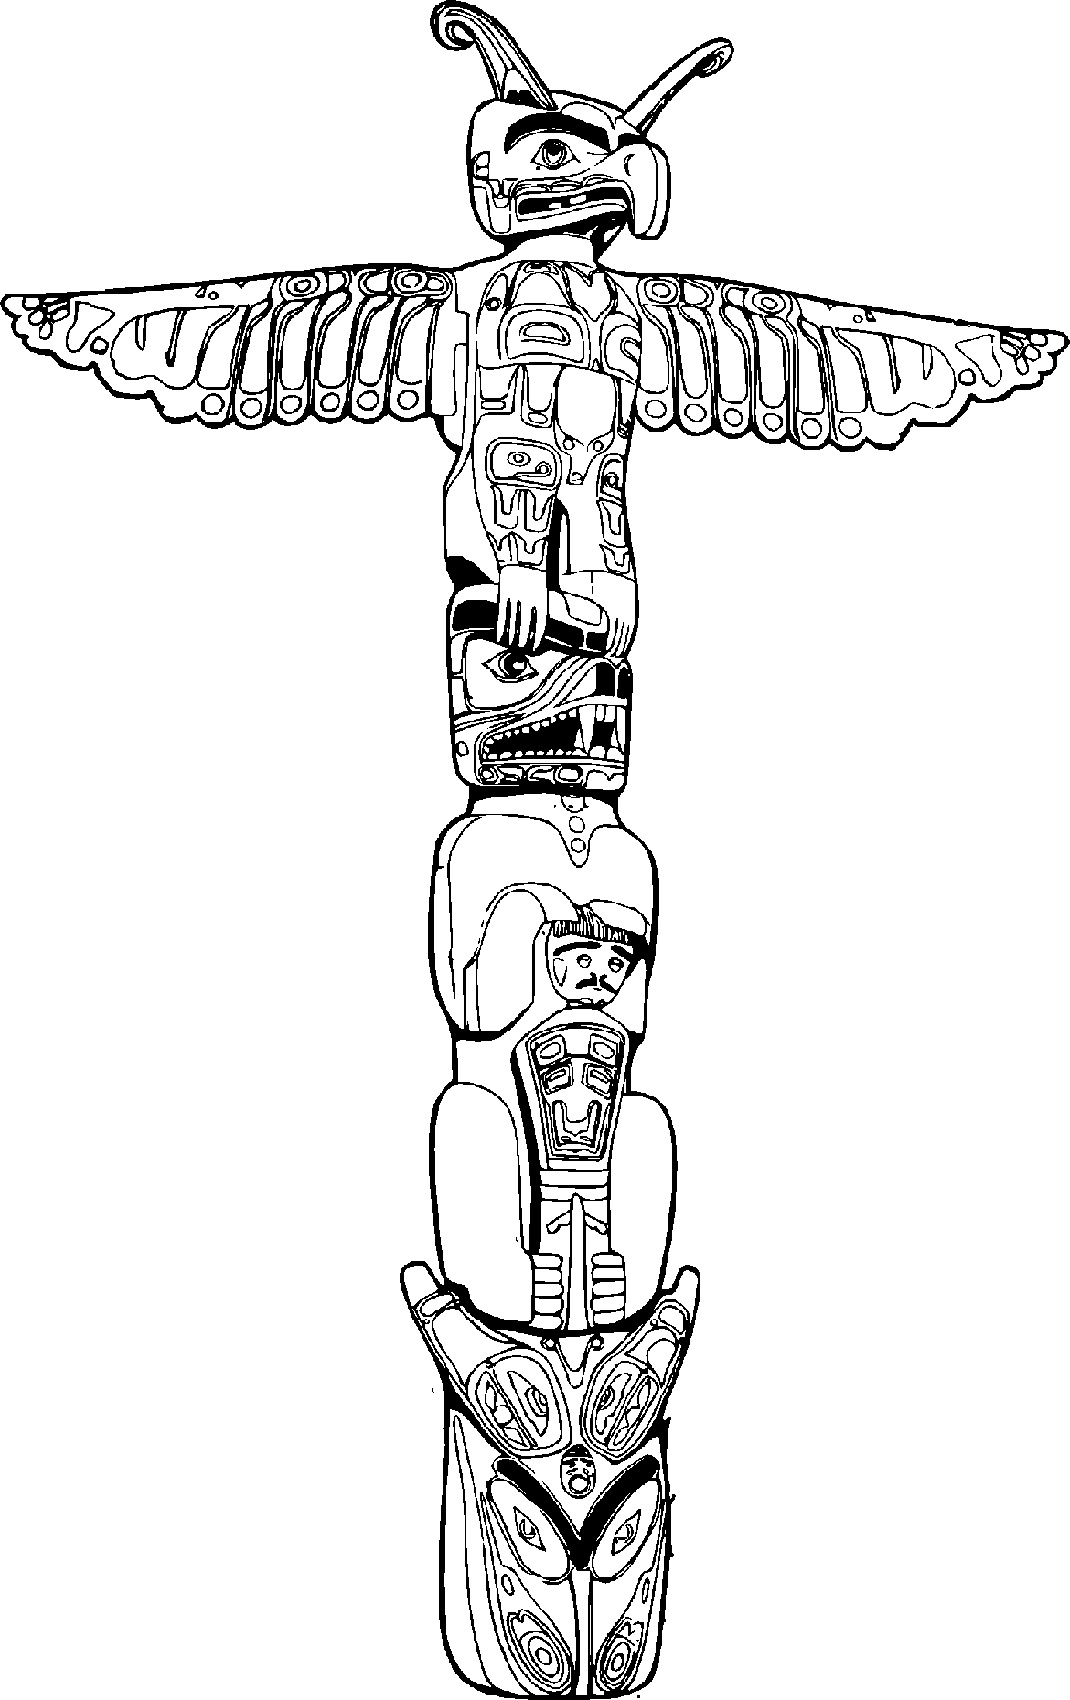 Totem Pole Coloring Pages For Adults